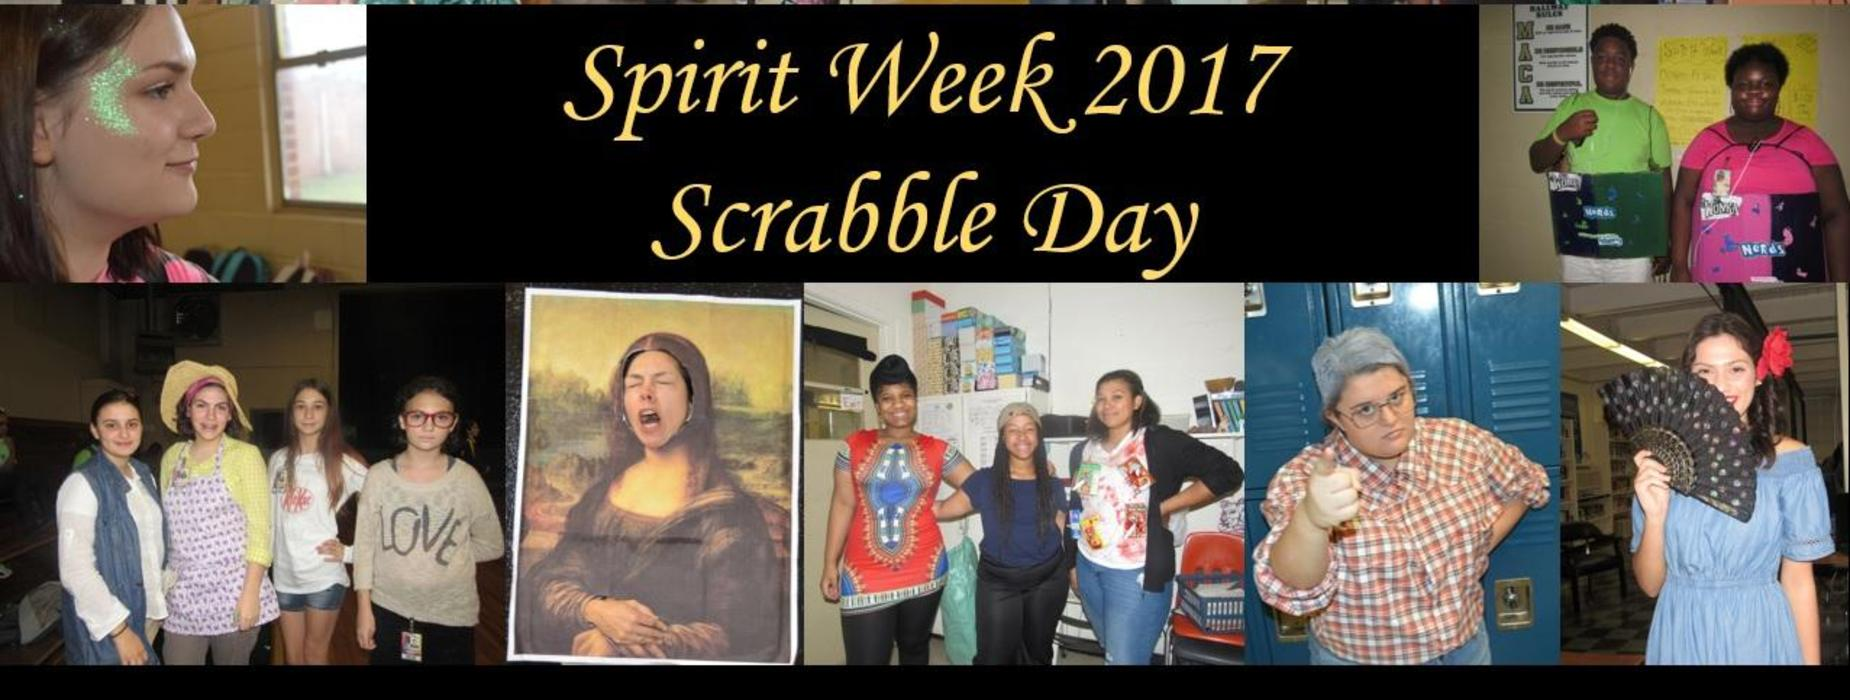 Spirit Week - Scrabble Day